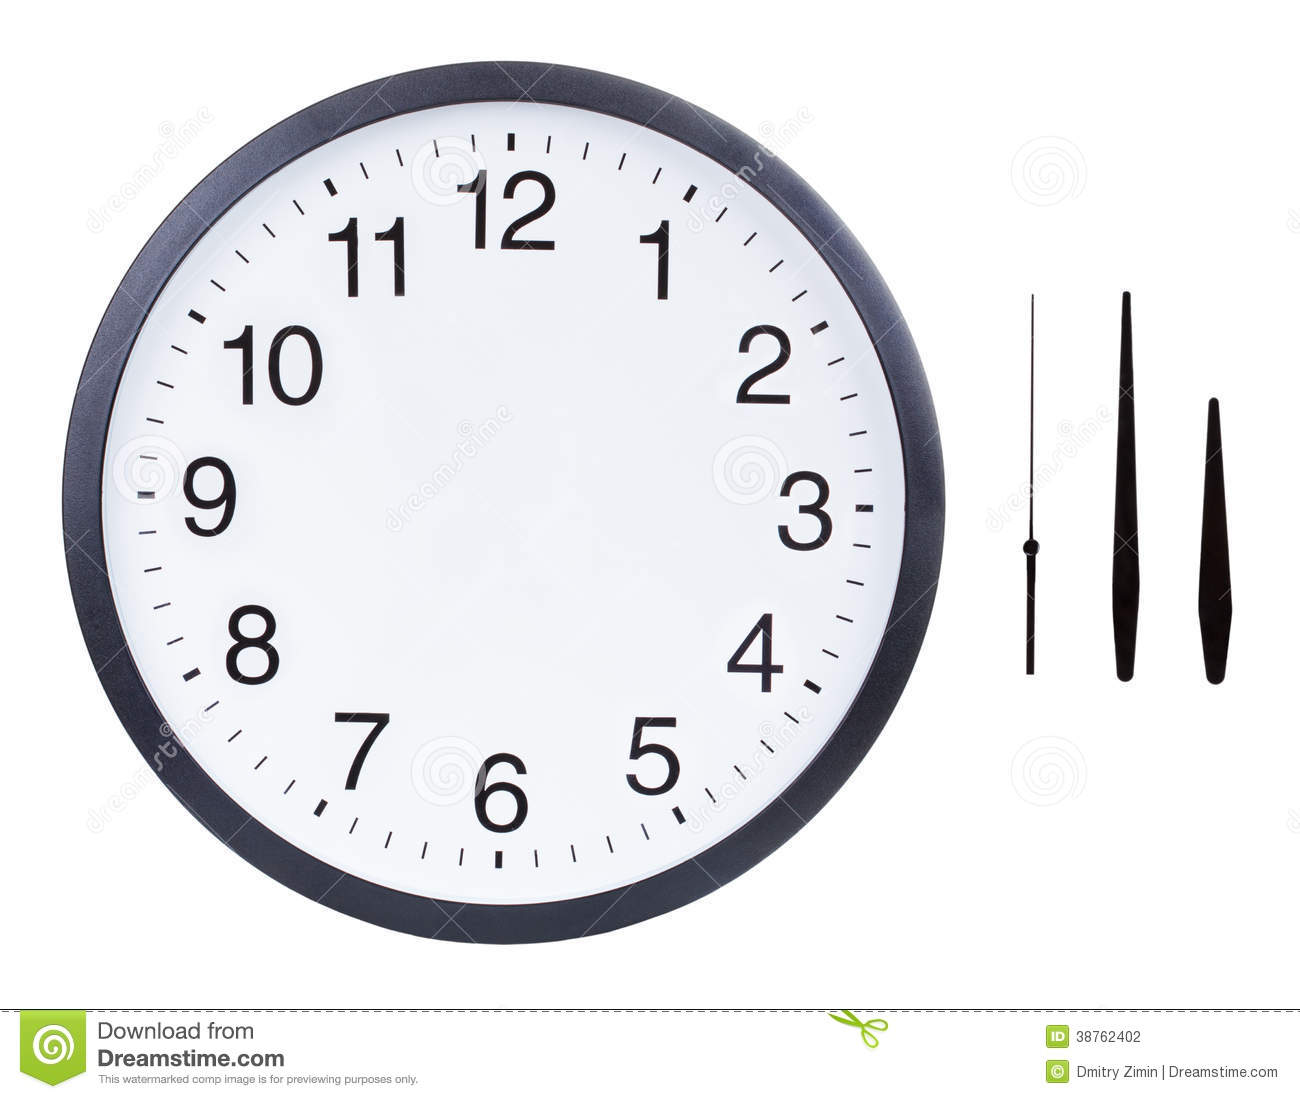 Blank clock face stock photo. Image of moment, concept - 38762402